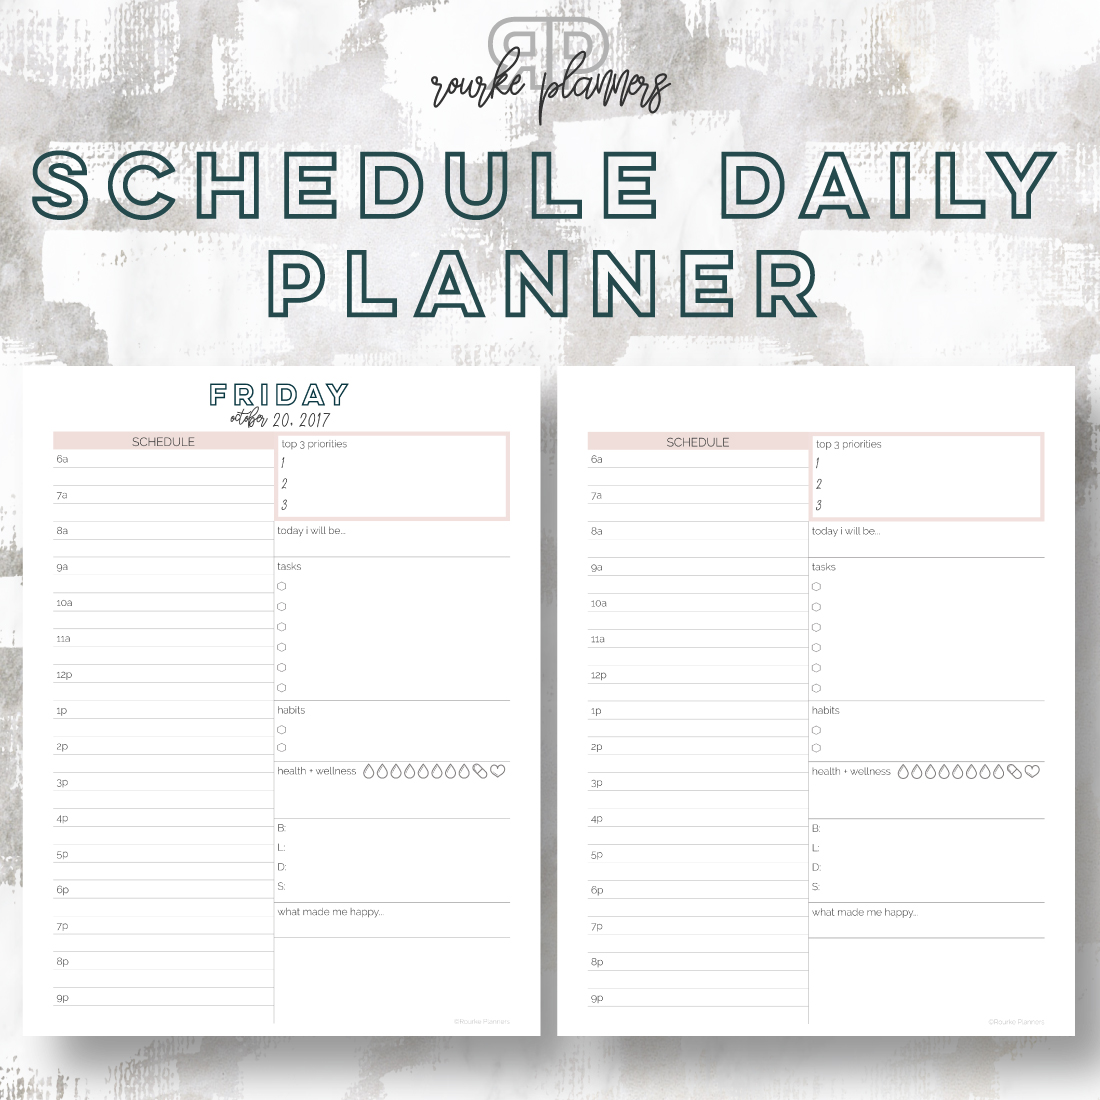 The Schedule Daily Planner | Rourke Planners